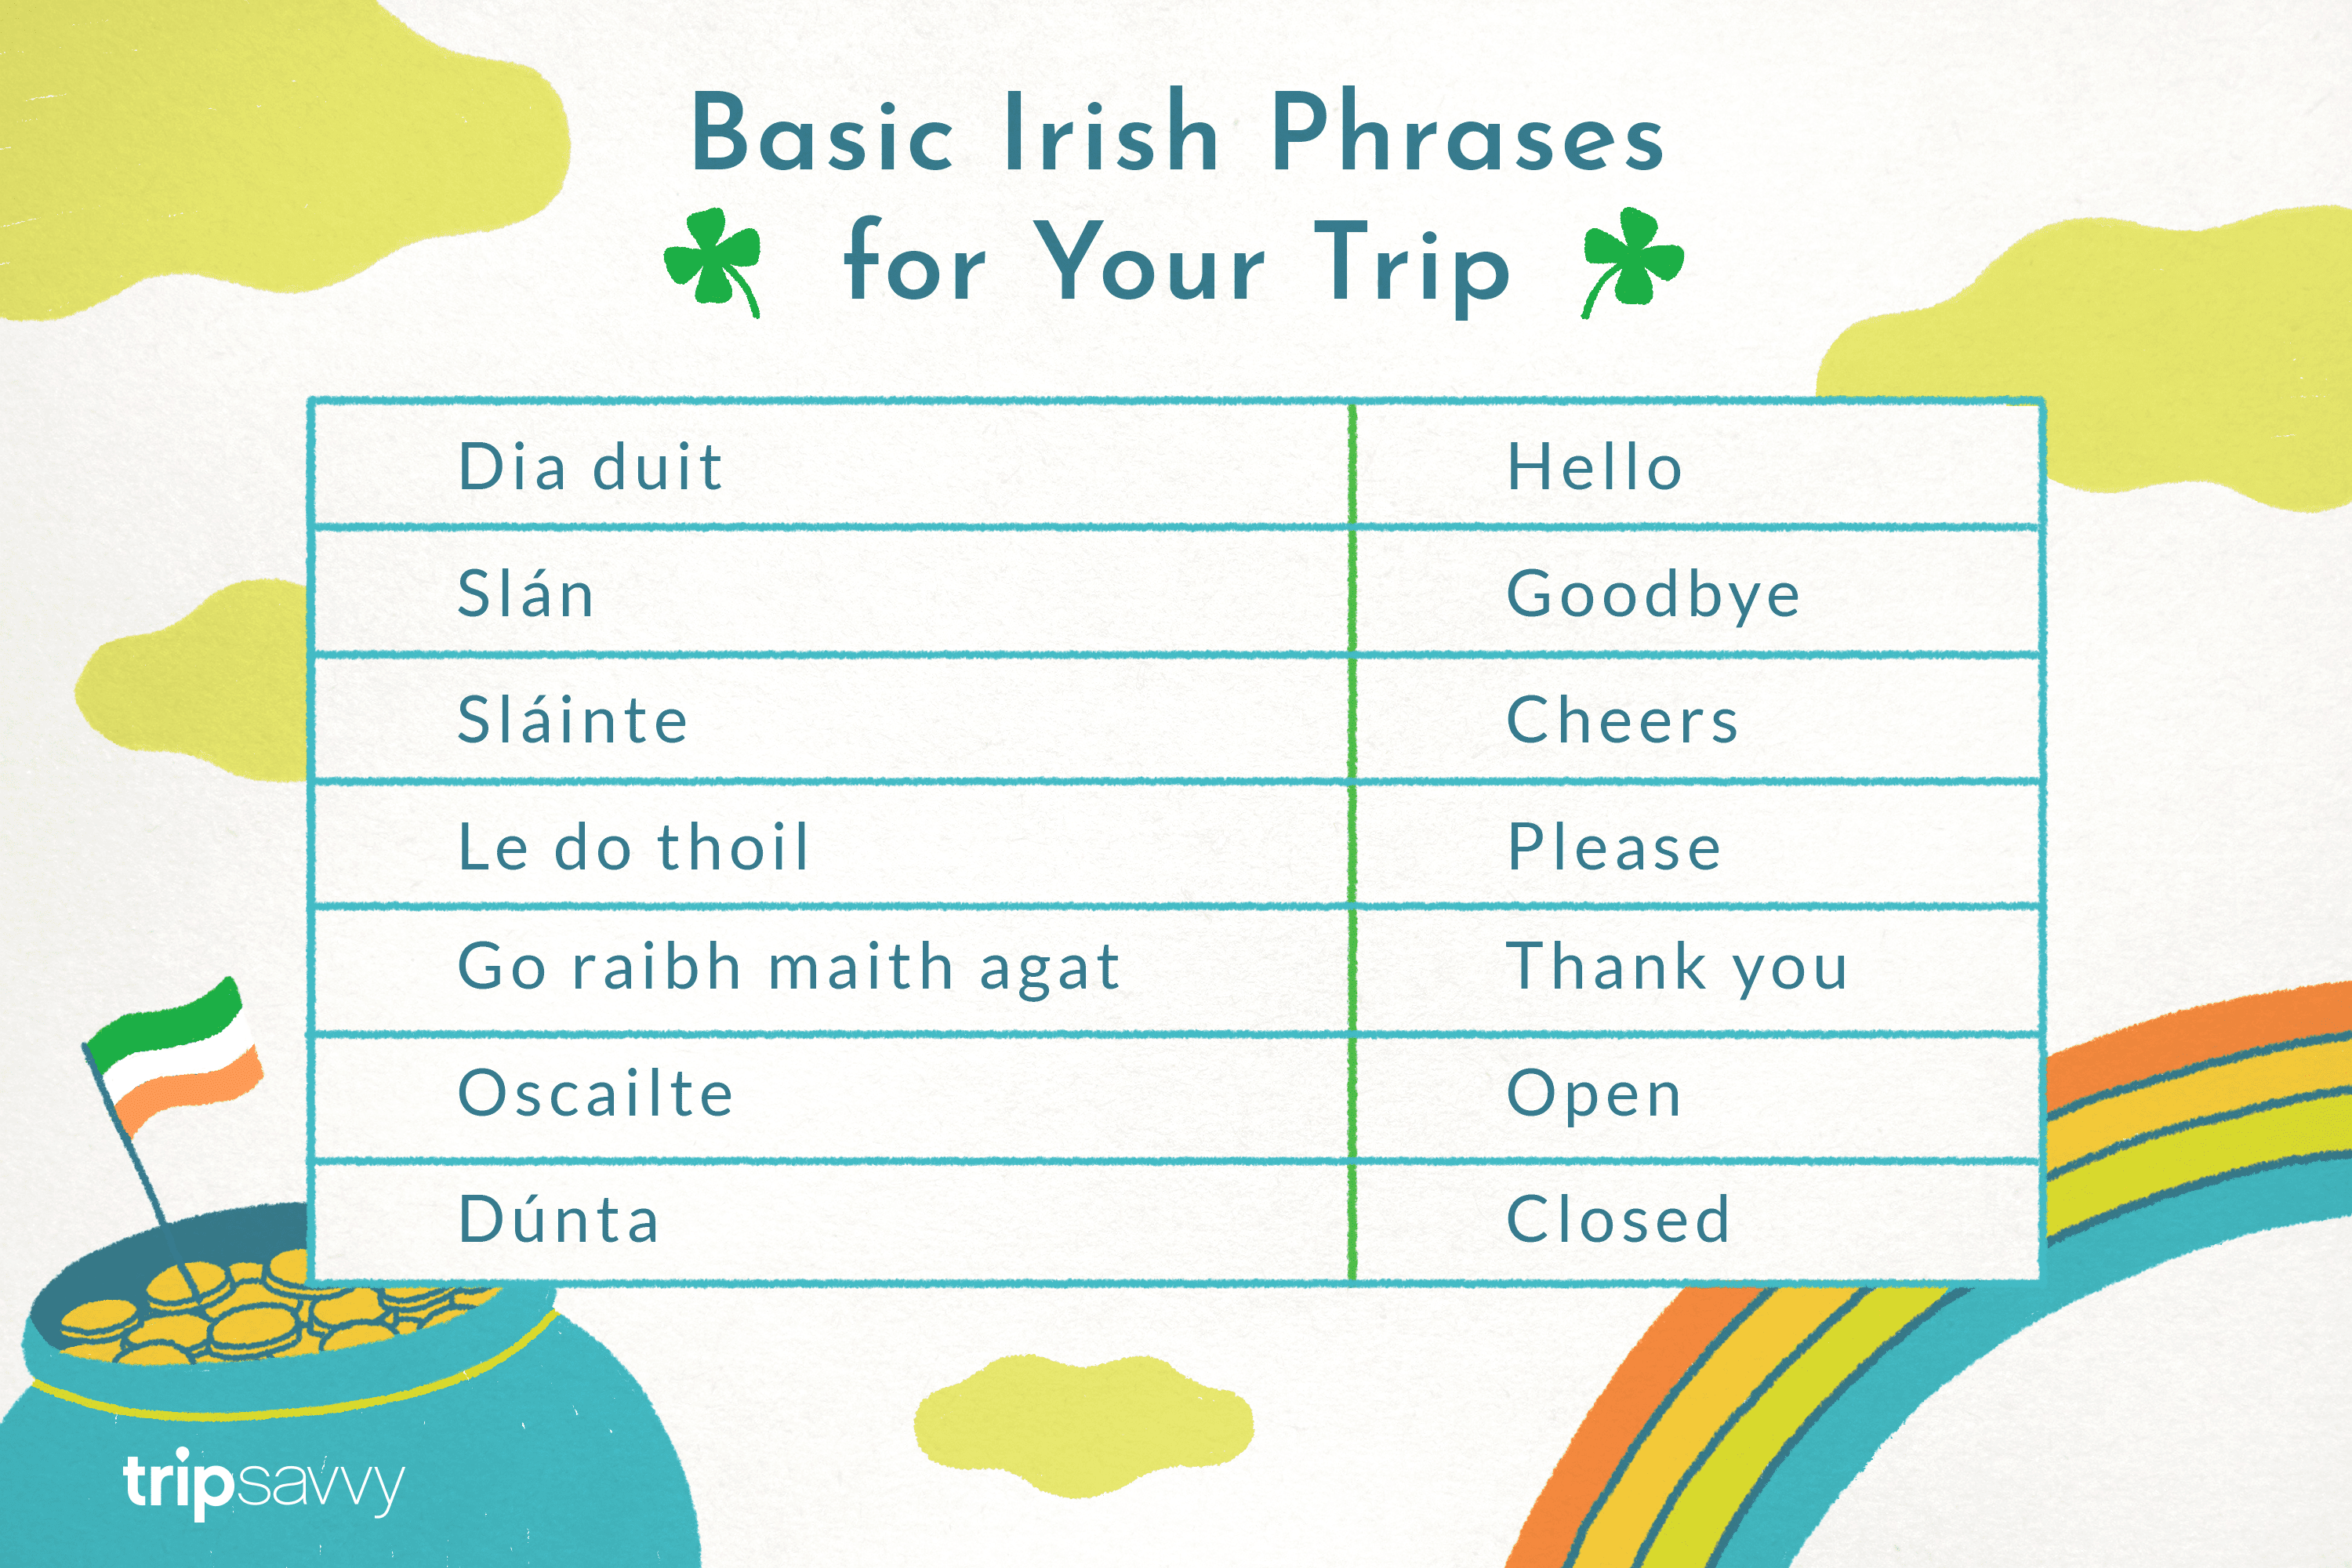 Common Irish Phrases and Greetings for Your Next Trip